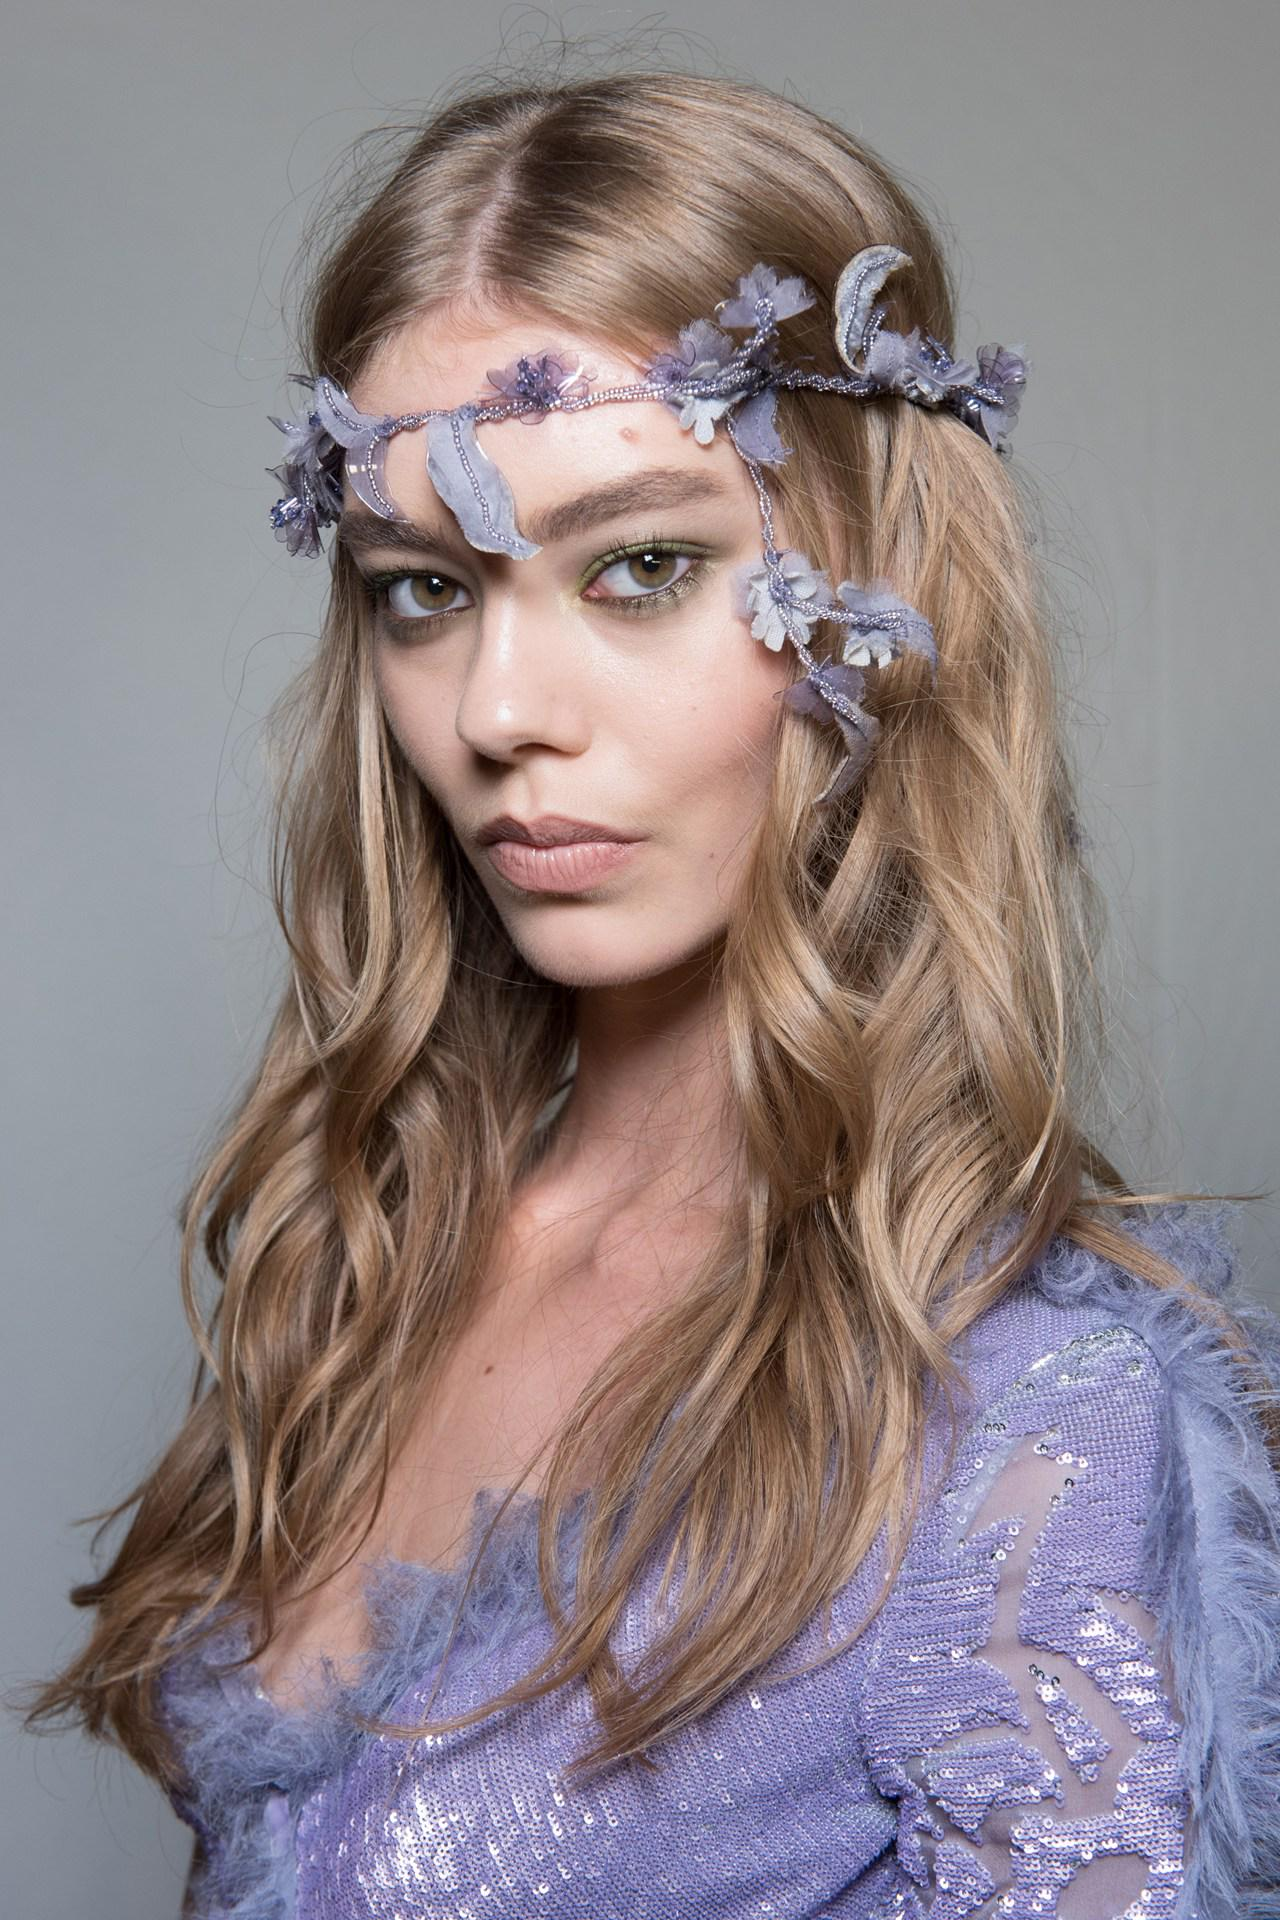 Festival hair - couture style. Go close-up on @GuidoPalau's @Versace creations: http://t.co/Q4QHf0YZT0 http://t.co/Hb6ML8Uem9